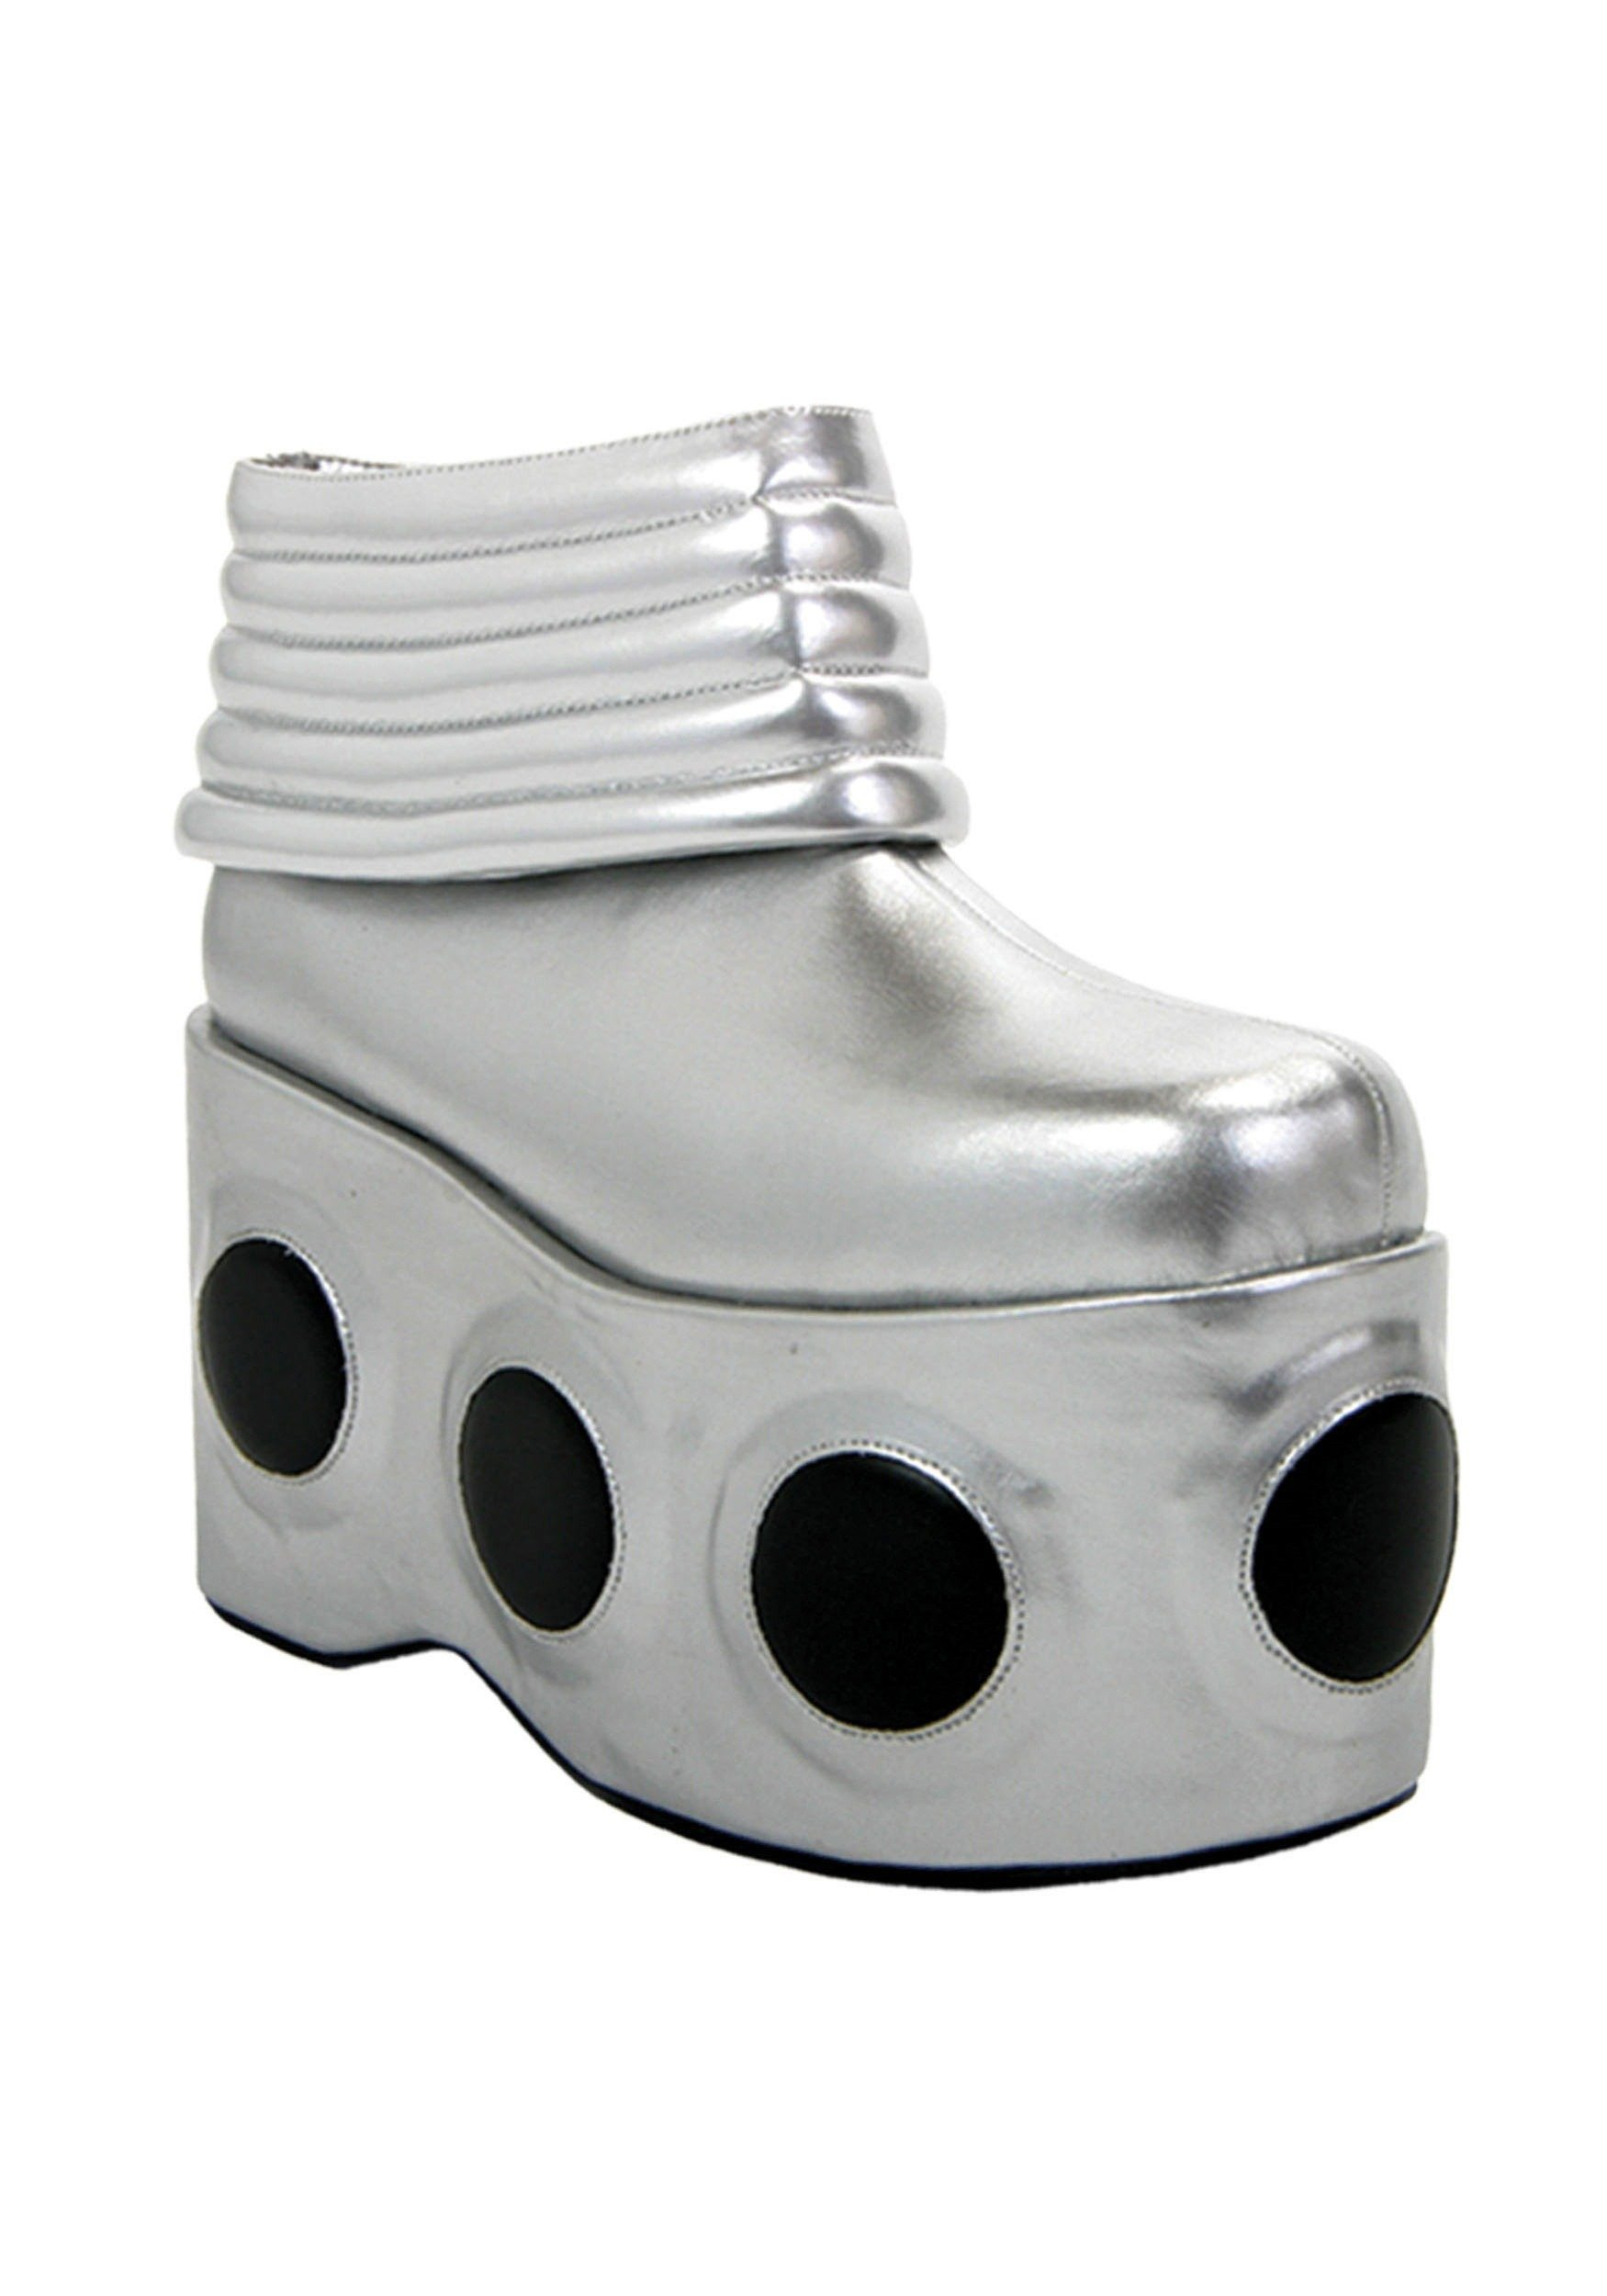 Spaceman Rock the Nation Boots (Small Size 9)